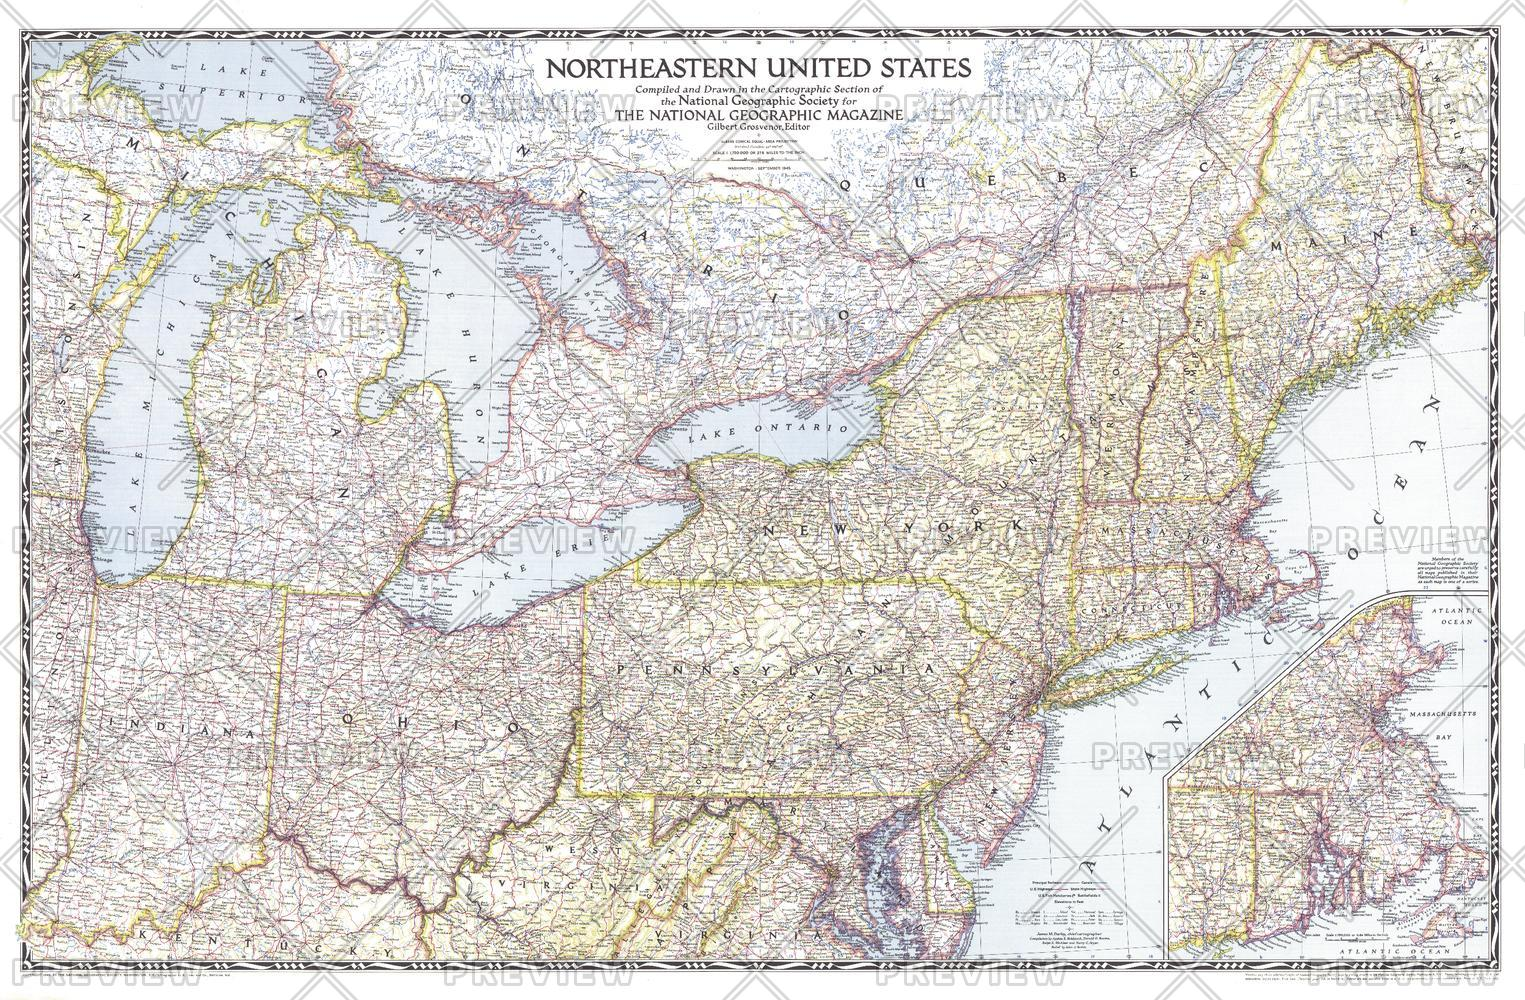 Northeastern United States - Published 1945